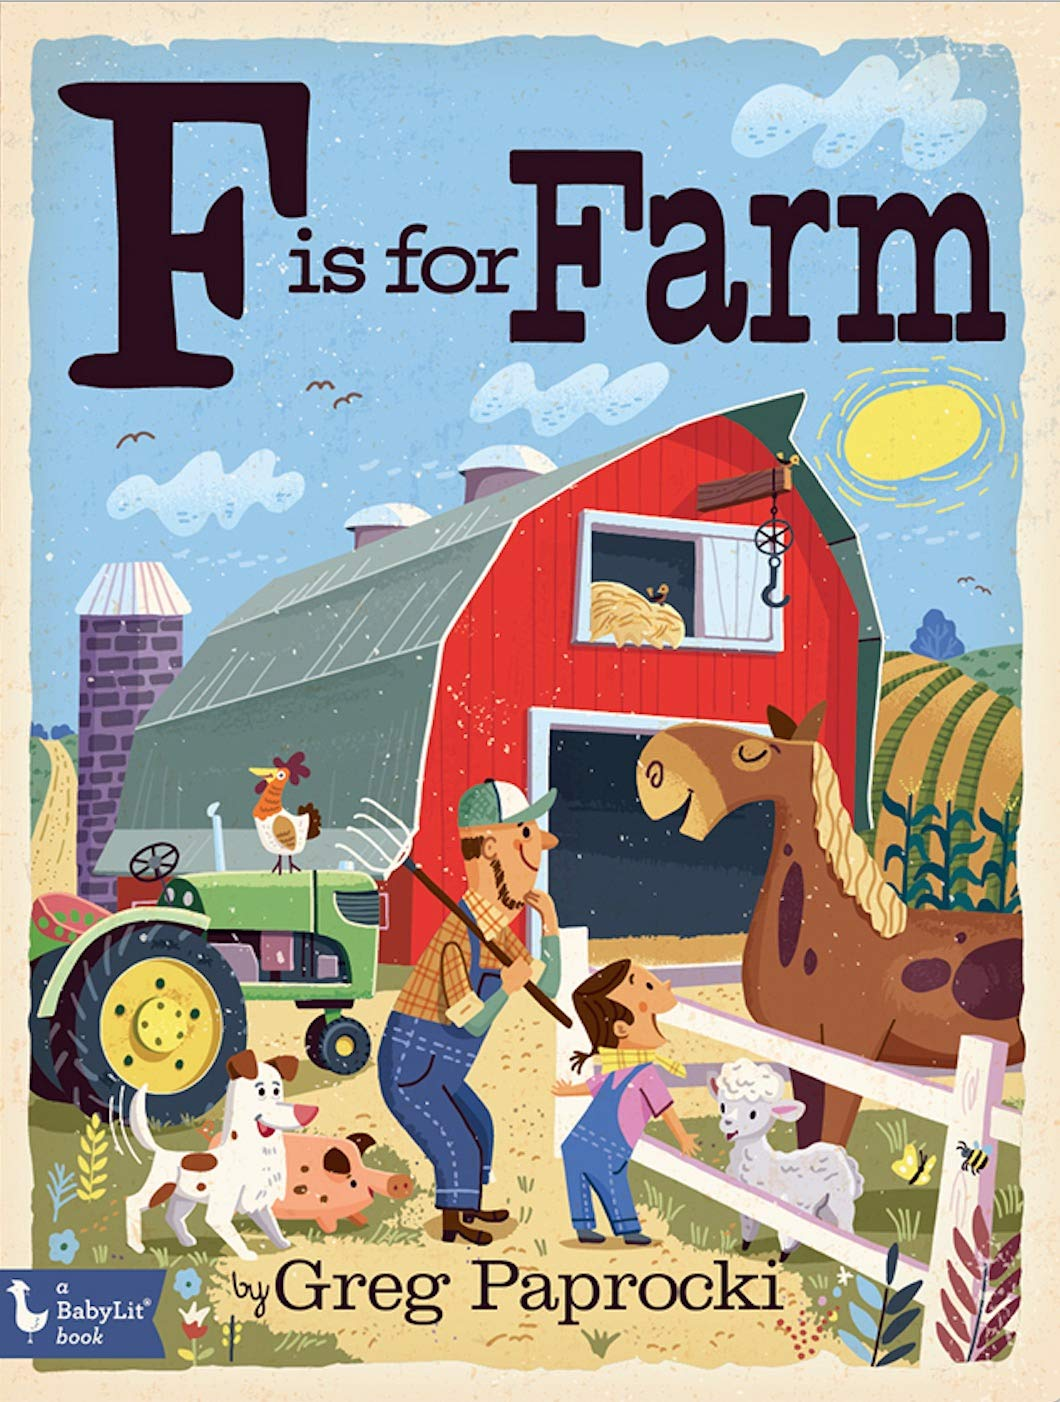 F is For Farmer: Baby Lit